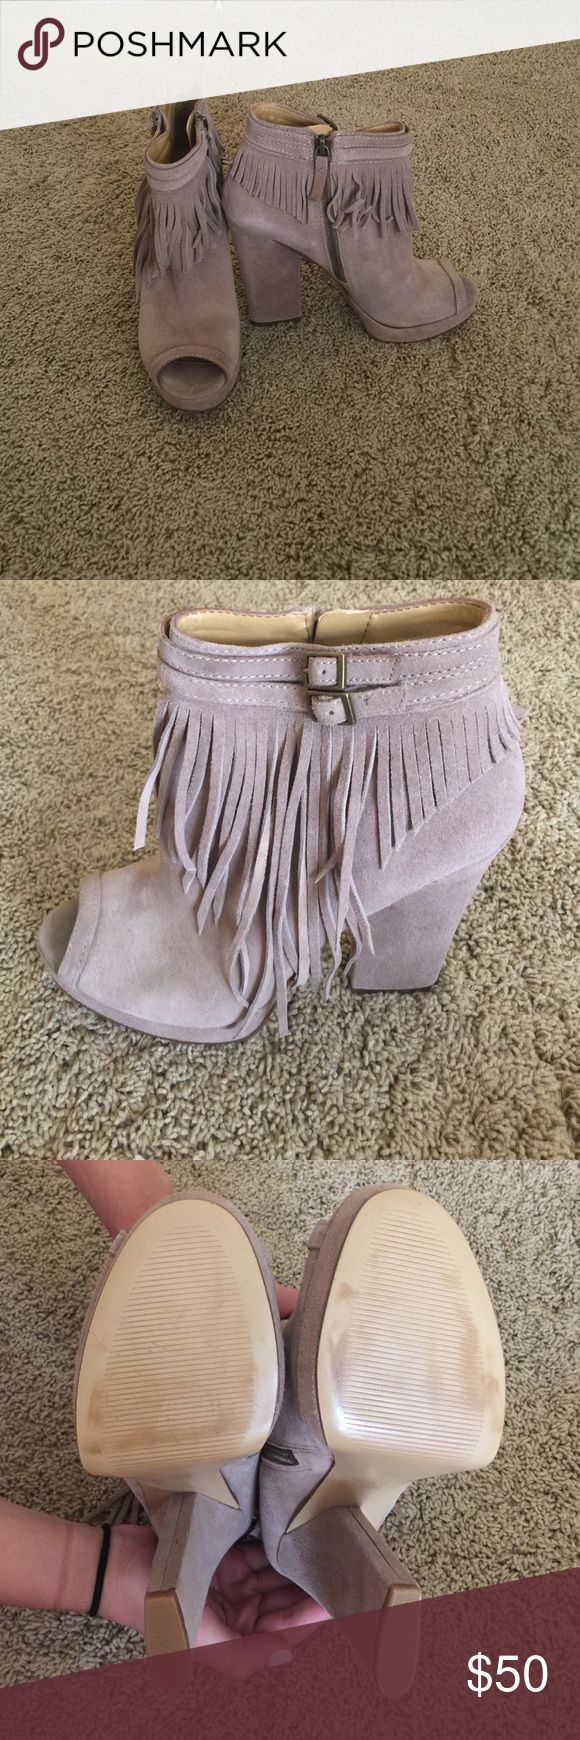 Nine West heels with fringe! So cute! Size 7.5. Nine West heels with fringe. In the color taupe. Size 7.5. In almost brand new condition! Nine West Shoes Heels